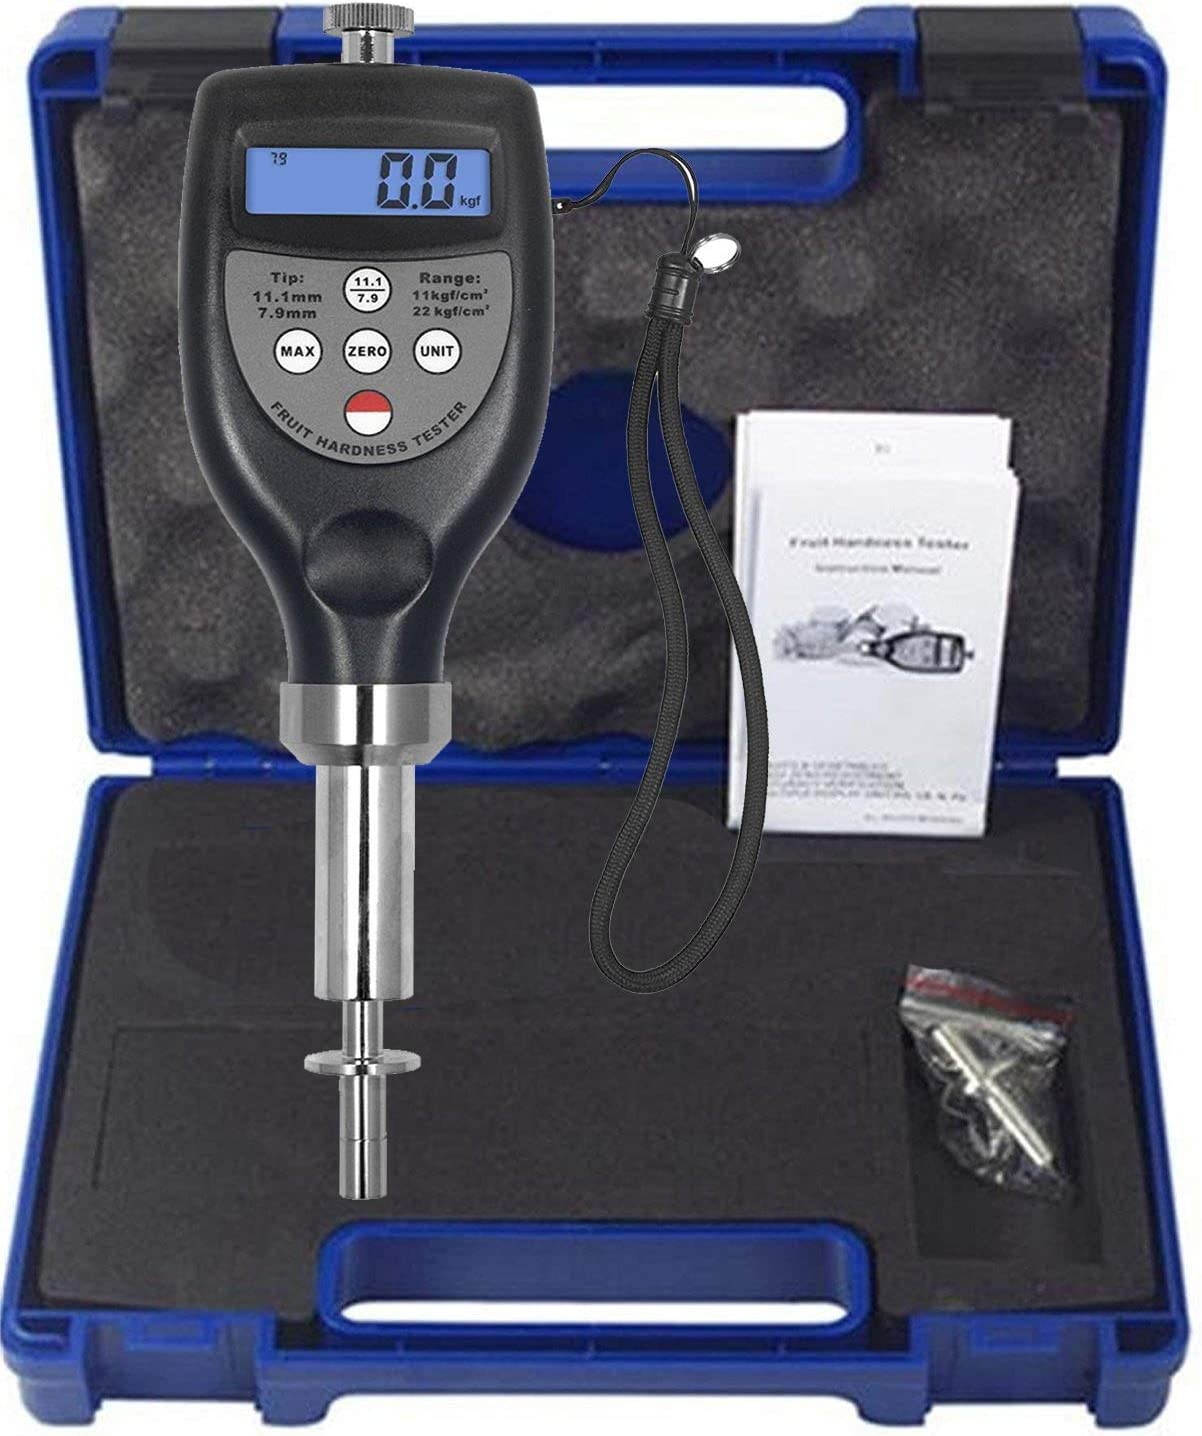 VTSYIQI Digital Fruit Penetrometer Hardness Tester Firmness Tester Sclerometer Hardness Tester for Vegetables Fruits include RS-232C data cable with software